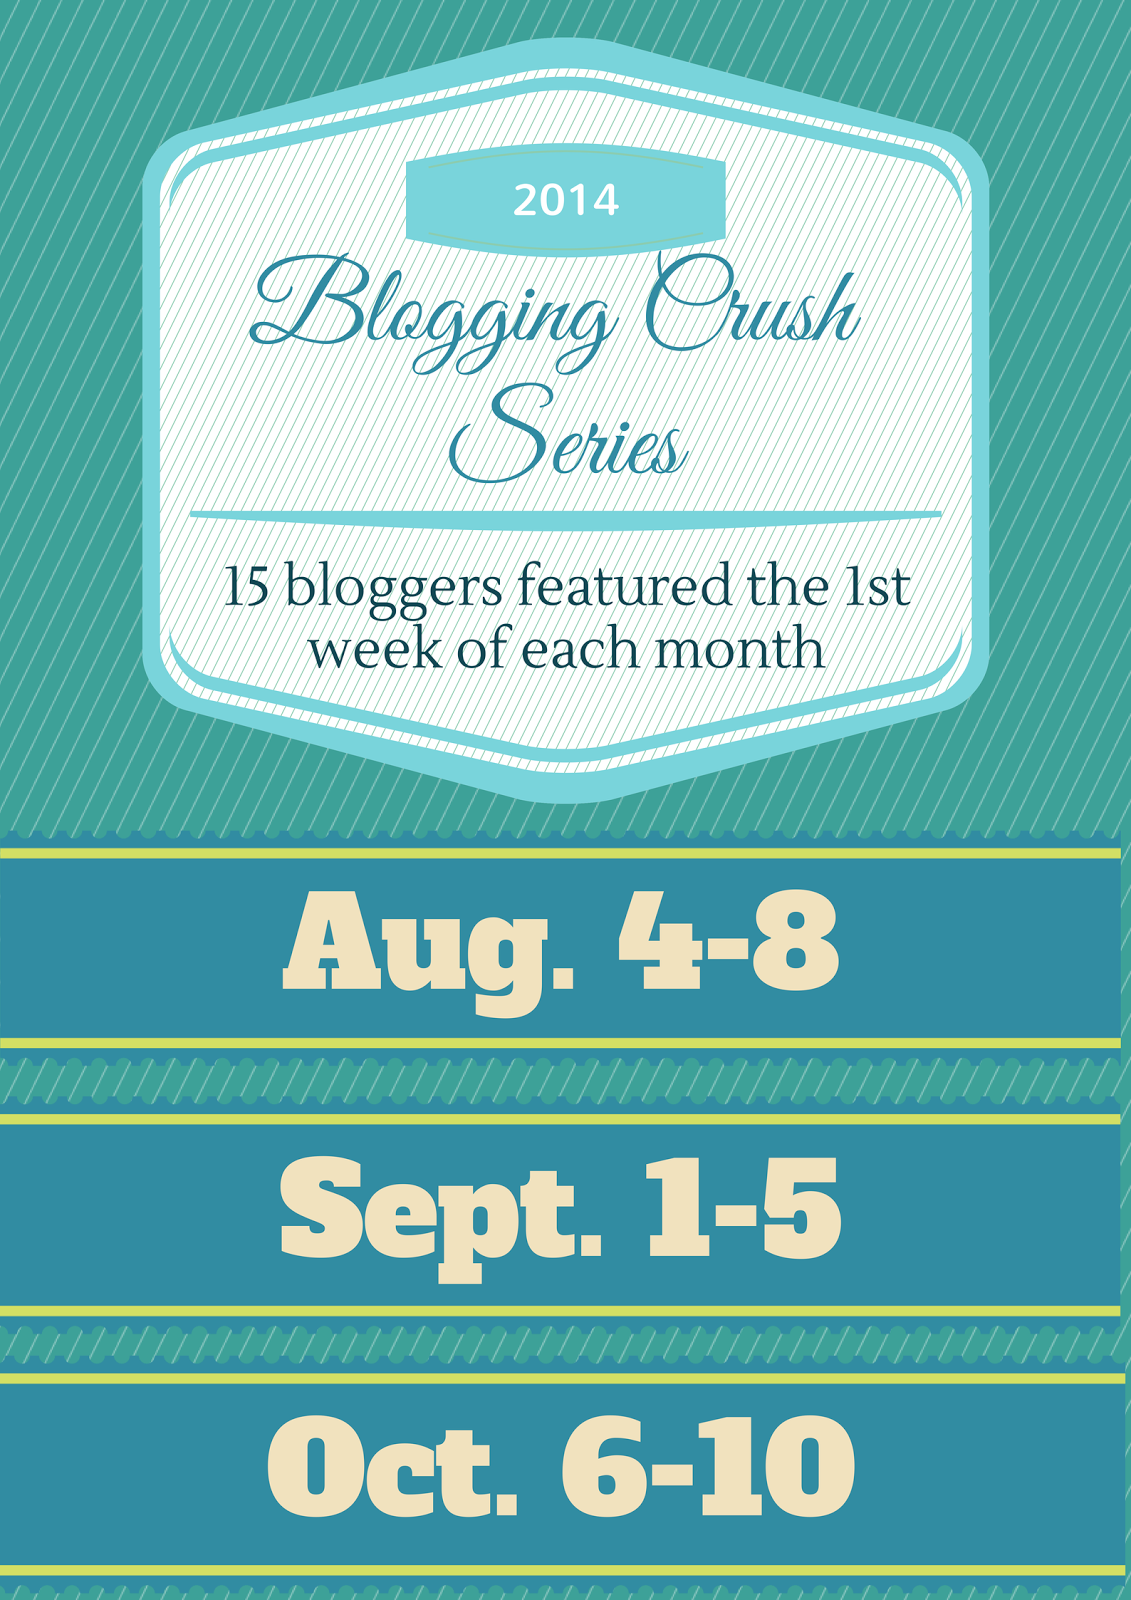 Blogging Crush Series